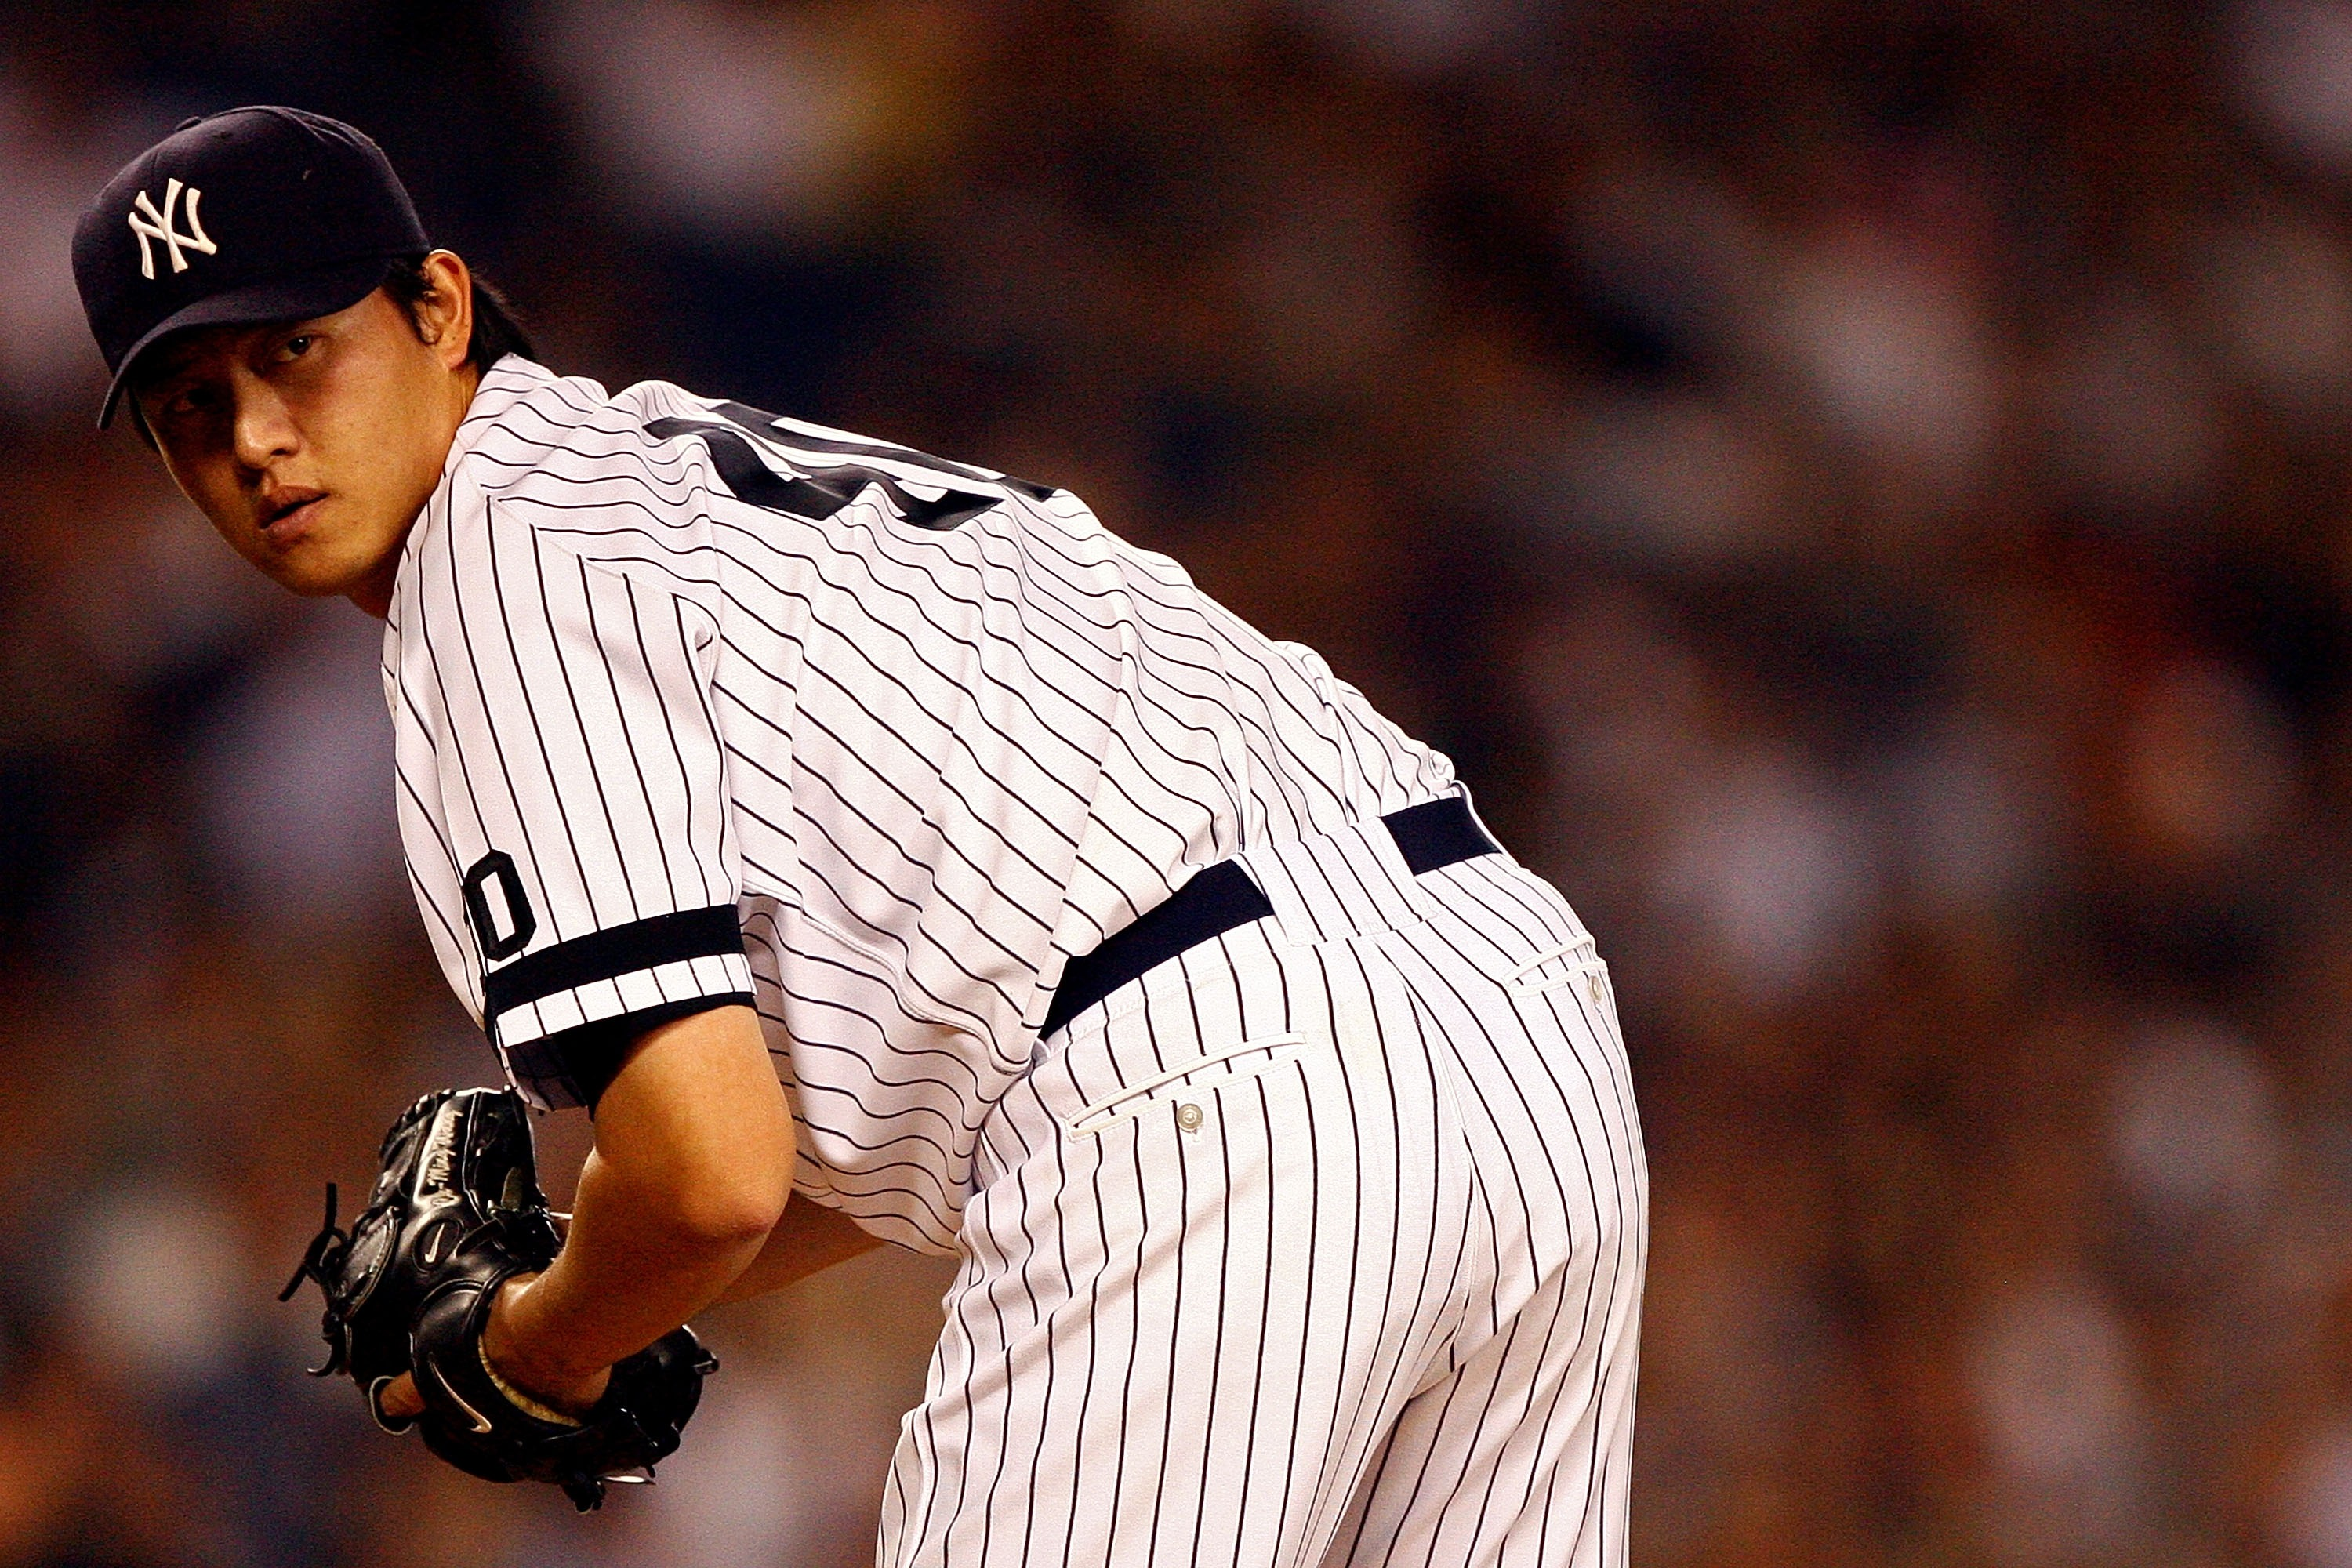 NEW YORK - OCTOBER 08:  Starting pitcher Chien-Ming Wang #40 of the New York Yankees looks to first against the Cleveland Indians during Game Four of the American League Division Series at Yankee Stadium on October 8, 2007 in the Bronx borough of New York